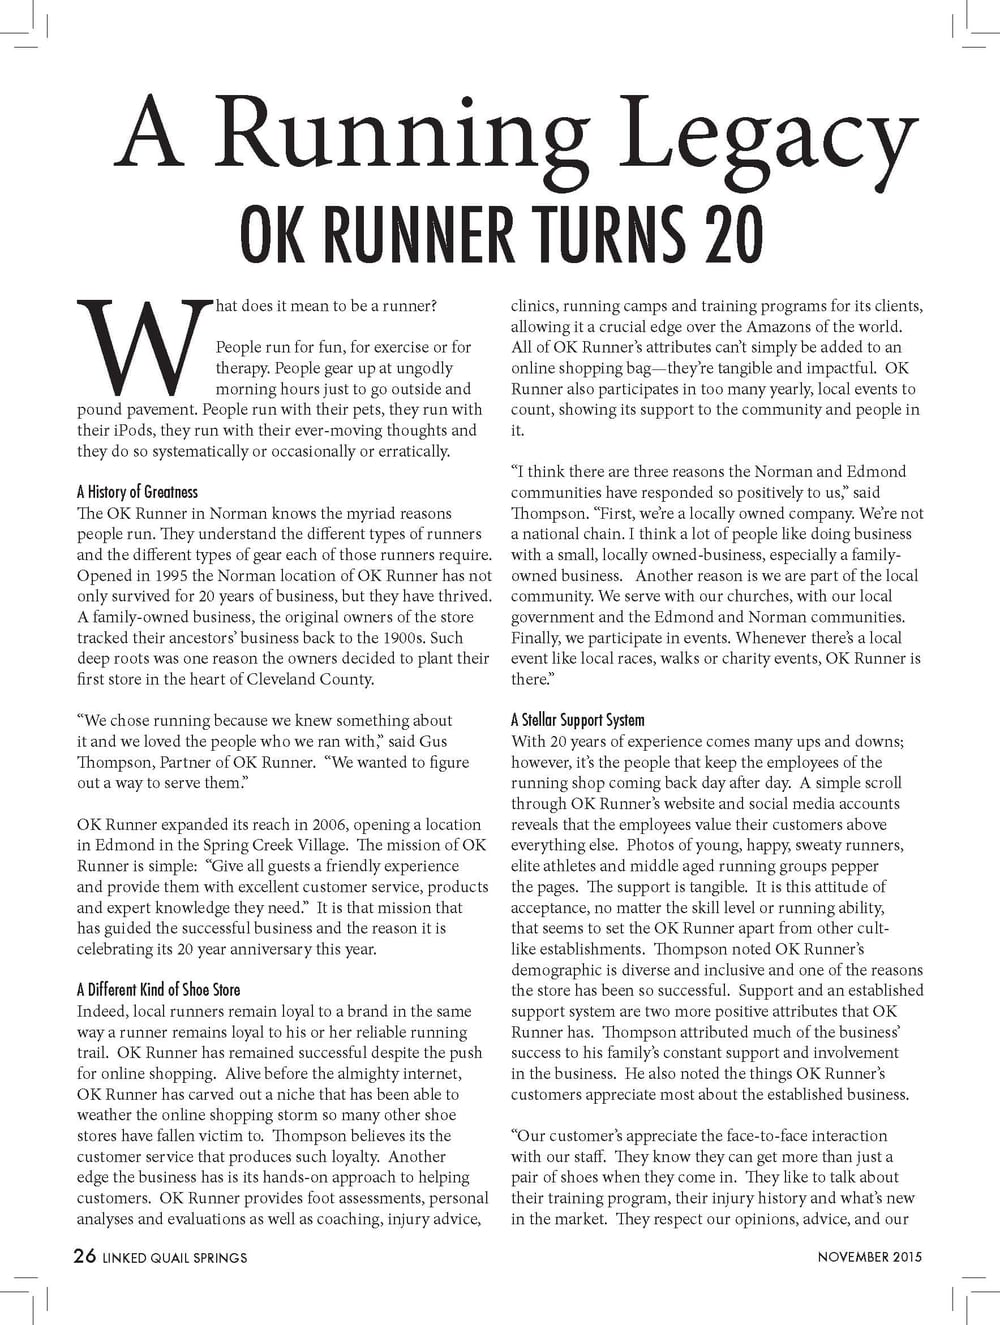 """A Running Legacy  OK RUNNER TURNS 20  What does it mean to be a runner?  People run for fun, for exercise or for  therapy. People gear up at ungodly  morning hours just to go outside and  pound pavement. People run with their pets, they run with  their iPods, they run with their ever-moving thoughts and  they do so systematically or occasionally or erratically.  A History of Greatness  The OK Runner in Norman knows the myriad reasons  people run. They understand the different types of runners  and the different types of gear each of those runners require.  Opened in 1995 the Norman location of OK Runner has not  only survived for 20 years of business, but they have thrived.  A family-owned business, the original owners of the store  tracked their ancestors' business back to the 1900s. Such  deep roots was one reason the owners decided to plant their  first store in the heart of Cleveland County.  """"We chose running because we knew something about  it and we loved the people who we ran with,"""" said Gus  Thompson, Partner of OK Runner. """"We wanted to figure  out a way to serve them.""""  OK Runner expanded its reach in 2006, opening a location  in Edmond in the Spring Creek Village. The mission of OK  Runner is simple: """"Give all guests a friendly experience  and provide them with excellent customer service, products  and expert knowledge they need."""" It is that mission that  has guided the successful business and the reason it is  celebrating its 20 year anniversary this year.  A Different Kind of Shoe Store  Indeed, local runners remain loyal to a brand in the same  way a runner remains loyal to his or her reliable running  trail. OK Runner has remained successful despite the push  for online shopping. Alive before the almighty internet,  OK Runner has carved out a niche that has been able to  weather the online shopping storm so many other shoe  stores have fallen victim to. Thompson believes its the  customer service that produces such loyalty. Another  edge the business """